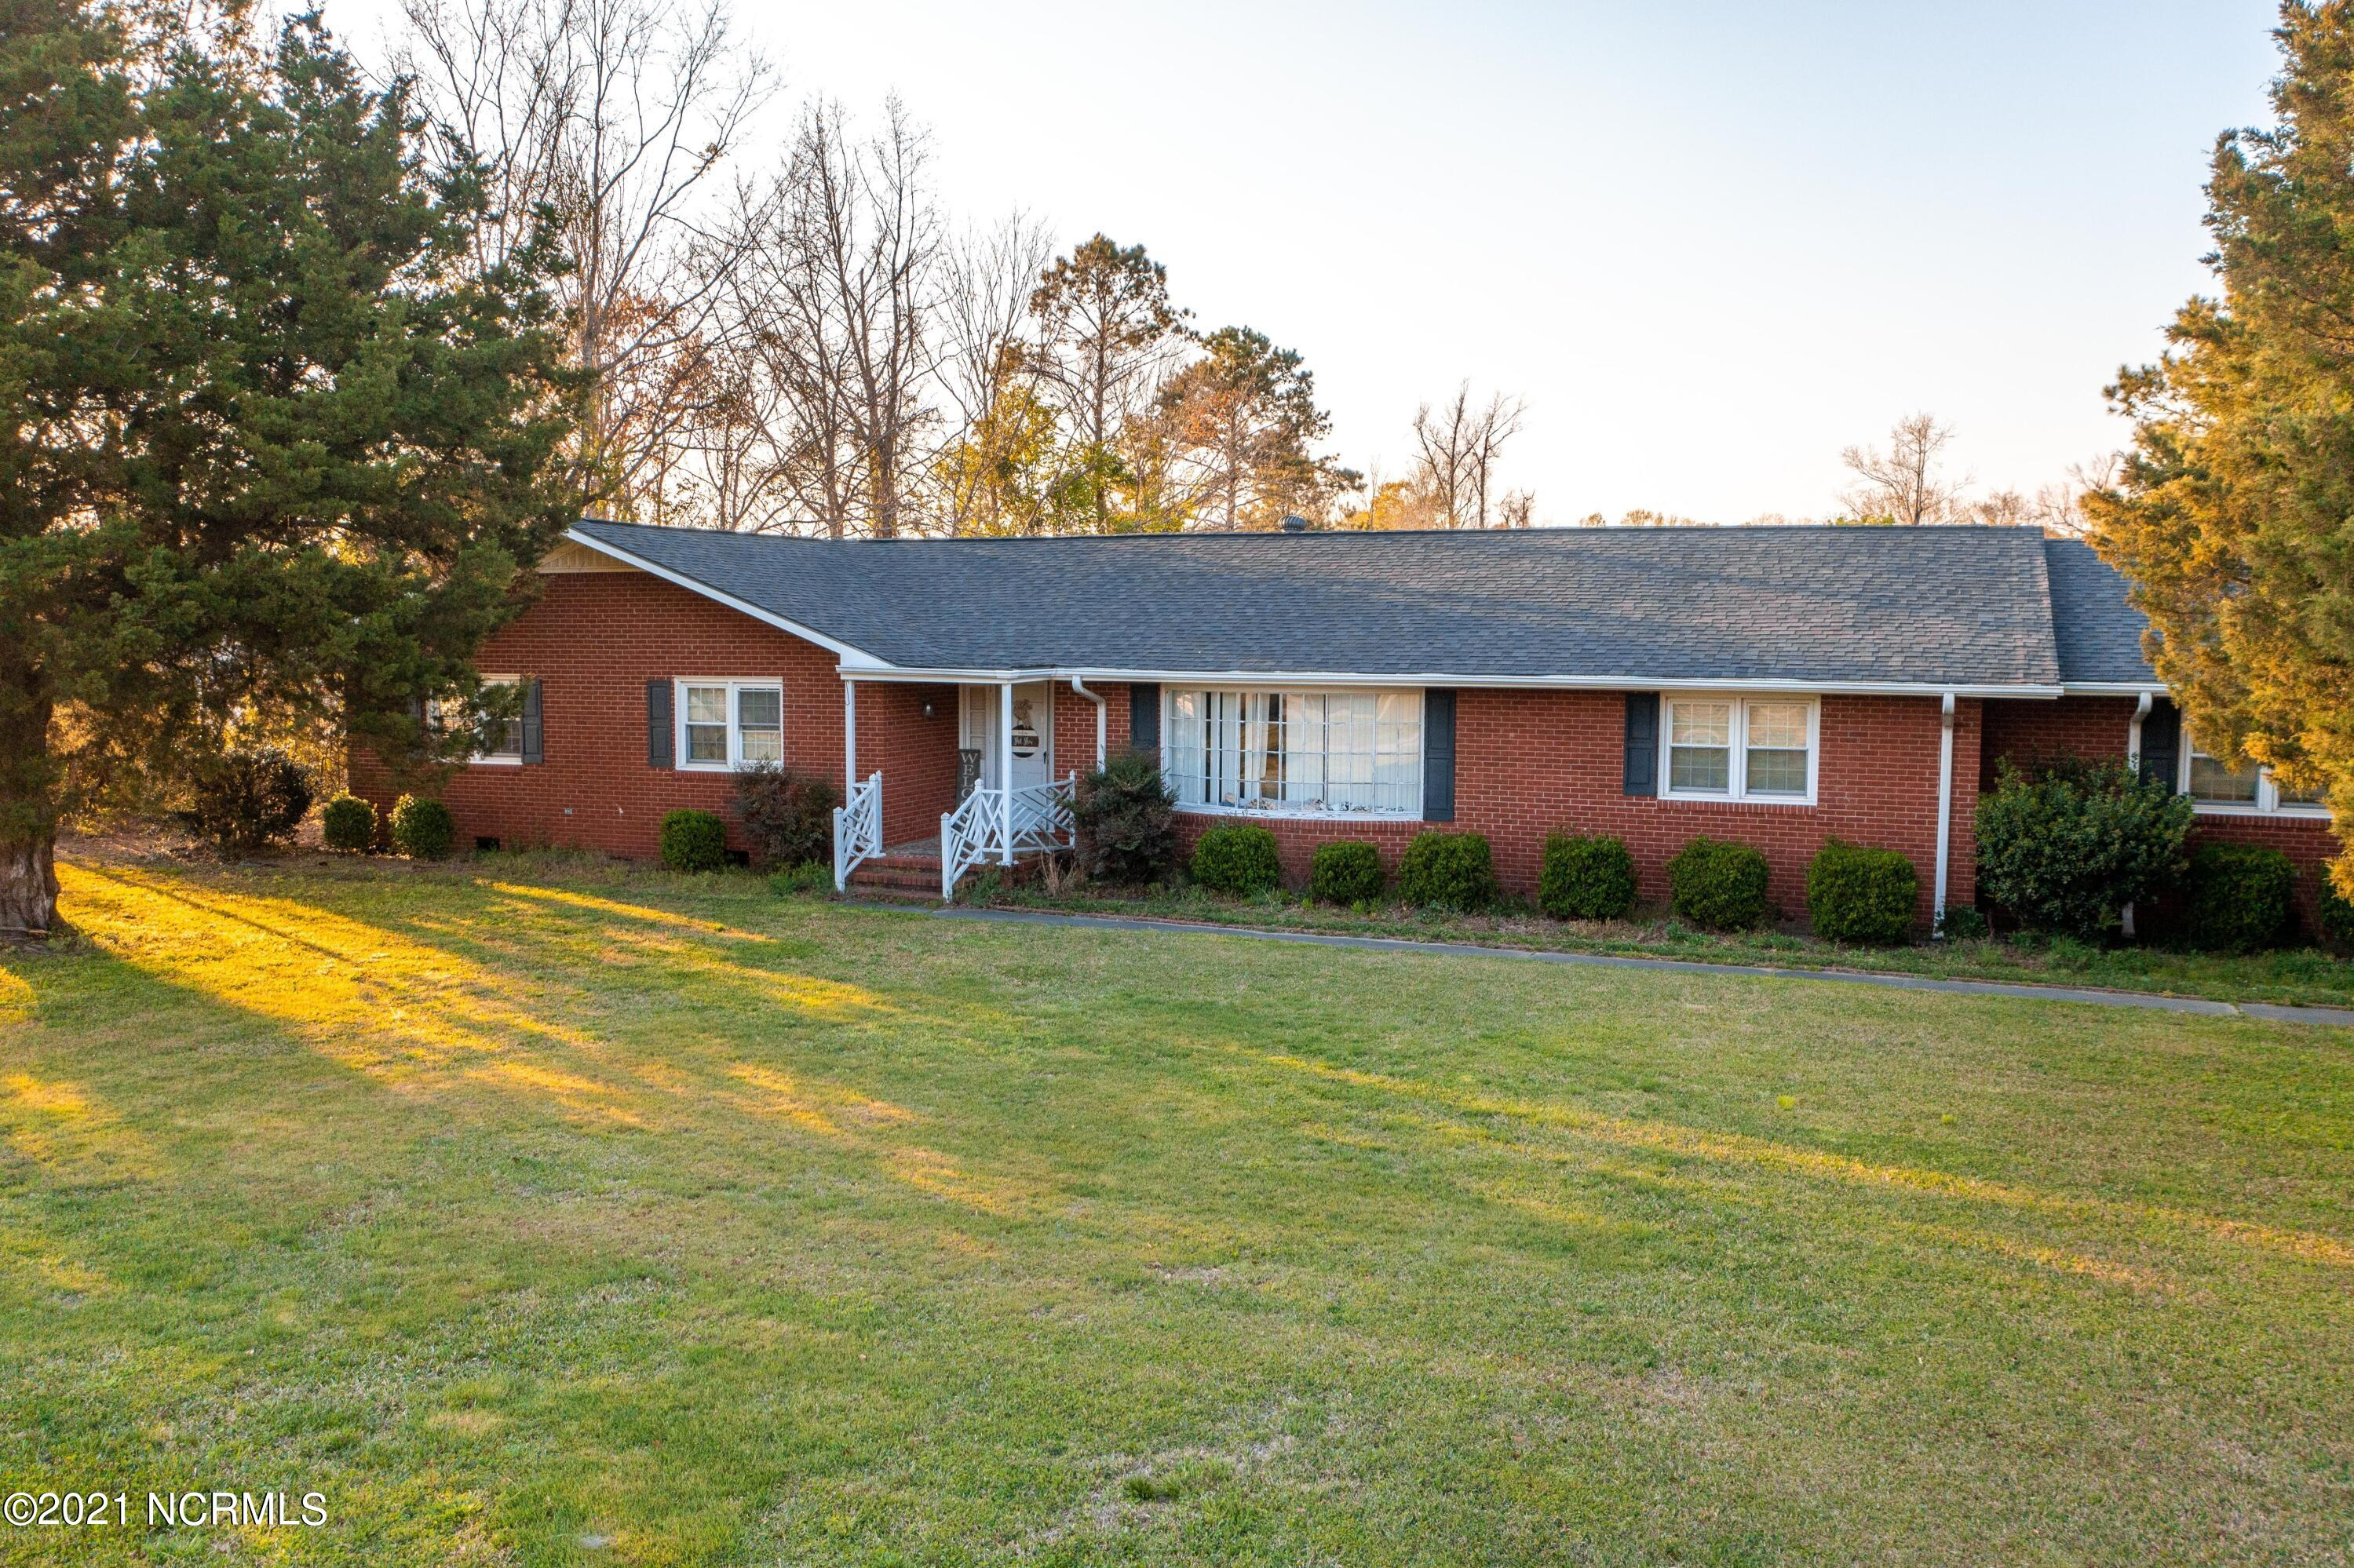 Attention Investors, Flippers, and Future Homeowners! PRICED TO SELL!4201 New Bern Highway is coming soon with more photos to come, currently has tenants inside the home not on a lease but is ready for you to take it over. All brick ranch house on 1 acre lot located just North of Jacksonville city limits! Huge kitchen, Bonus Room, Family Room, Formal Living and Formal Dining rooms making this home ideal for entertaining. New roof last year! Home was renovated around 2009 with new windows, custom blinds, ceramic tile, carpet, custom countertops as well as stainless steel appliances.  It is ready for its new owner to fix it up and remodel!This home has great features outside to include a large deck with a gazebo and three outbuildings to account for your outdoor entertaining!Seller is offering $5,000 use as you choose with a full price offer! Seller is also open to seller financing, contact agent for more information regarding terms.Contact me today for more information!